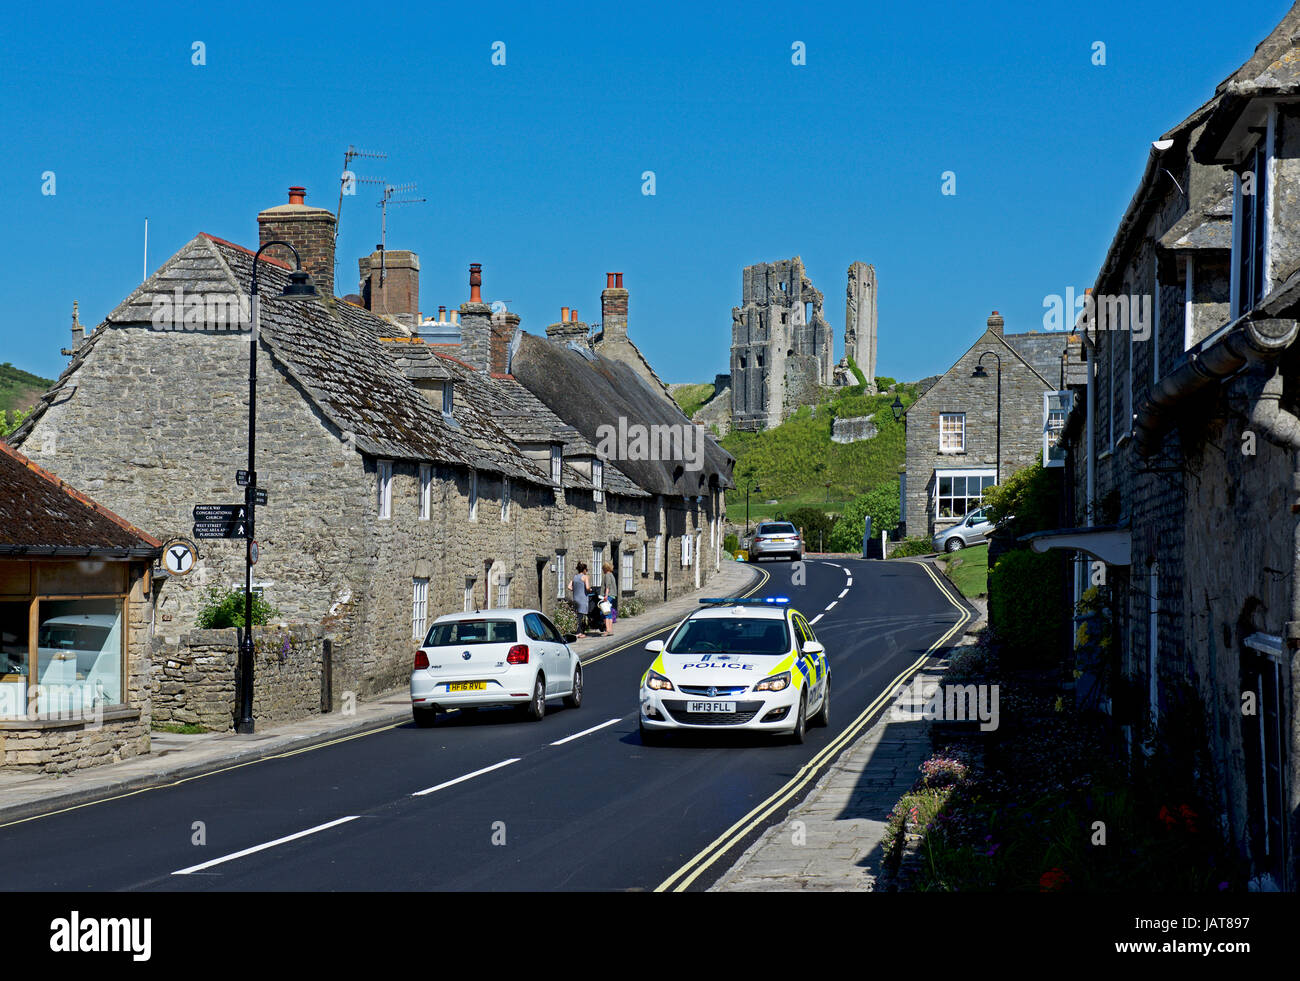 Police car on A351 in Corfe Castle, Dorset, England UK Stock Photo